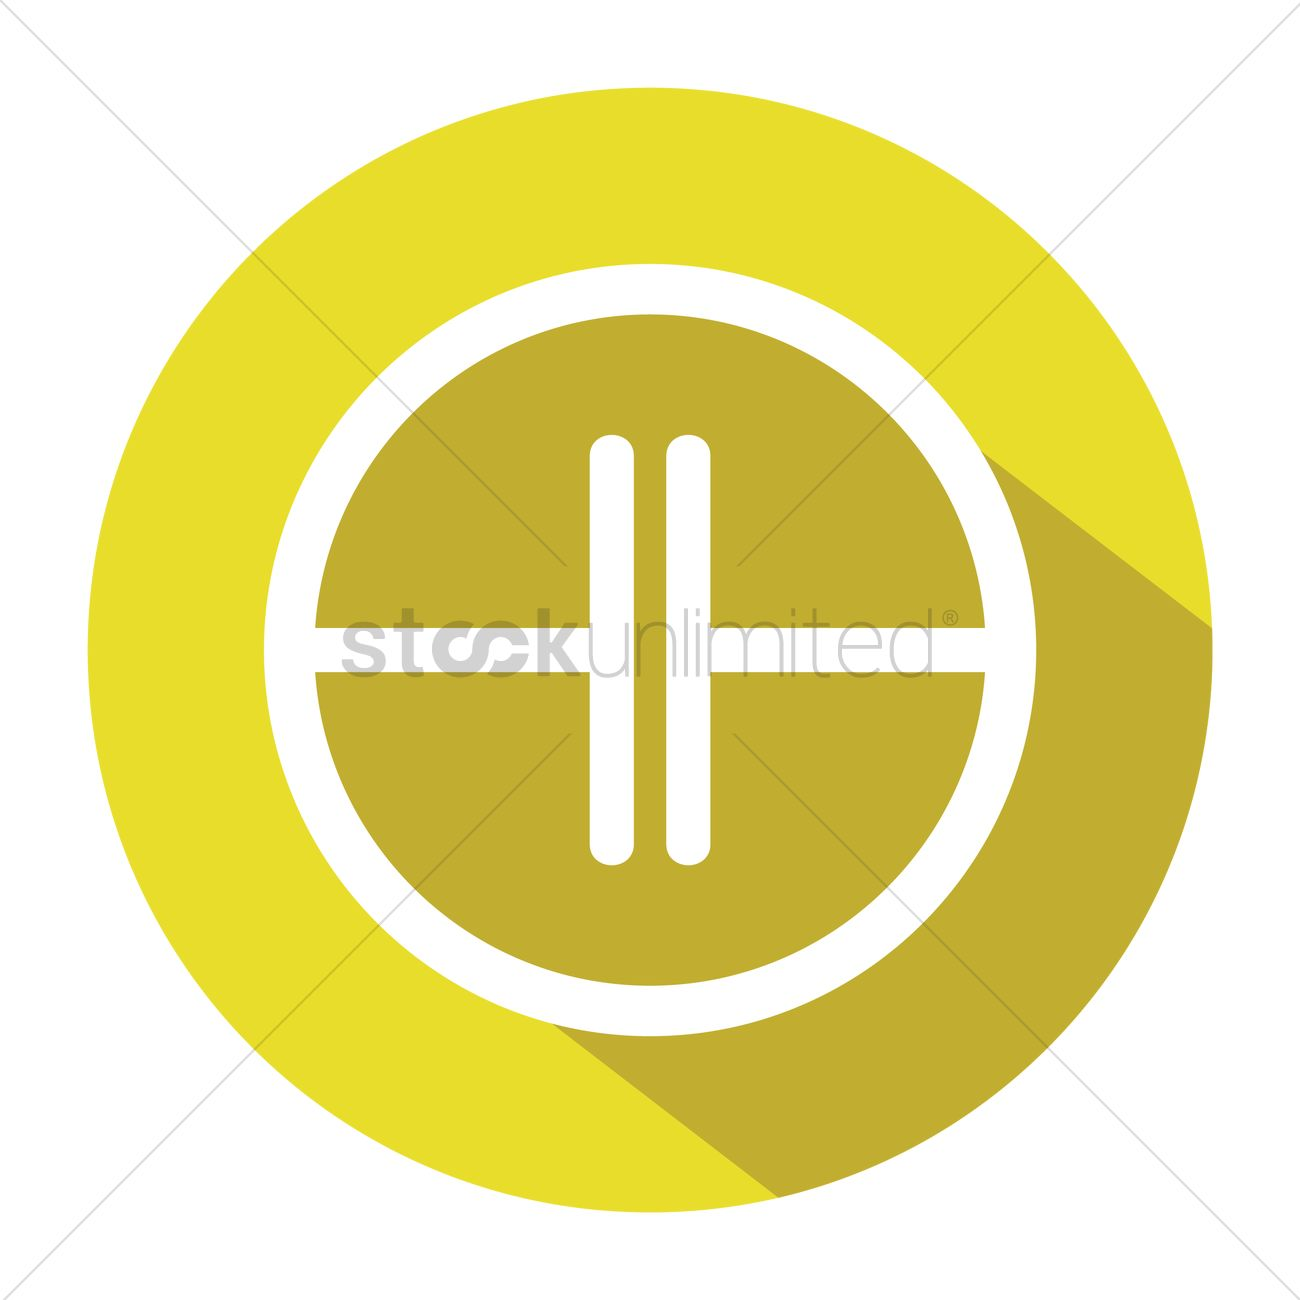 Free Electric Circuit Symbol For Capacitor Vector Image 1248265 Electronic Symbols Commonly Used Graphic